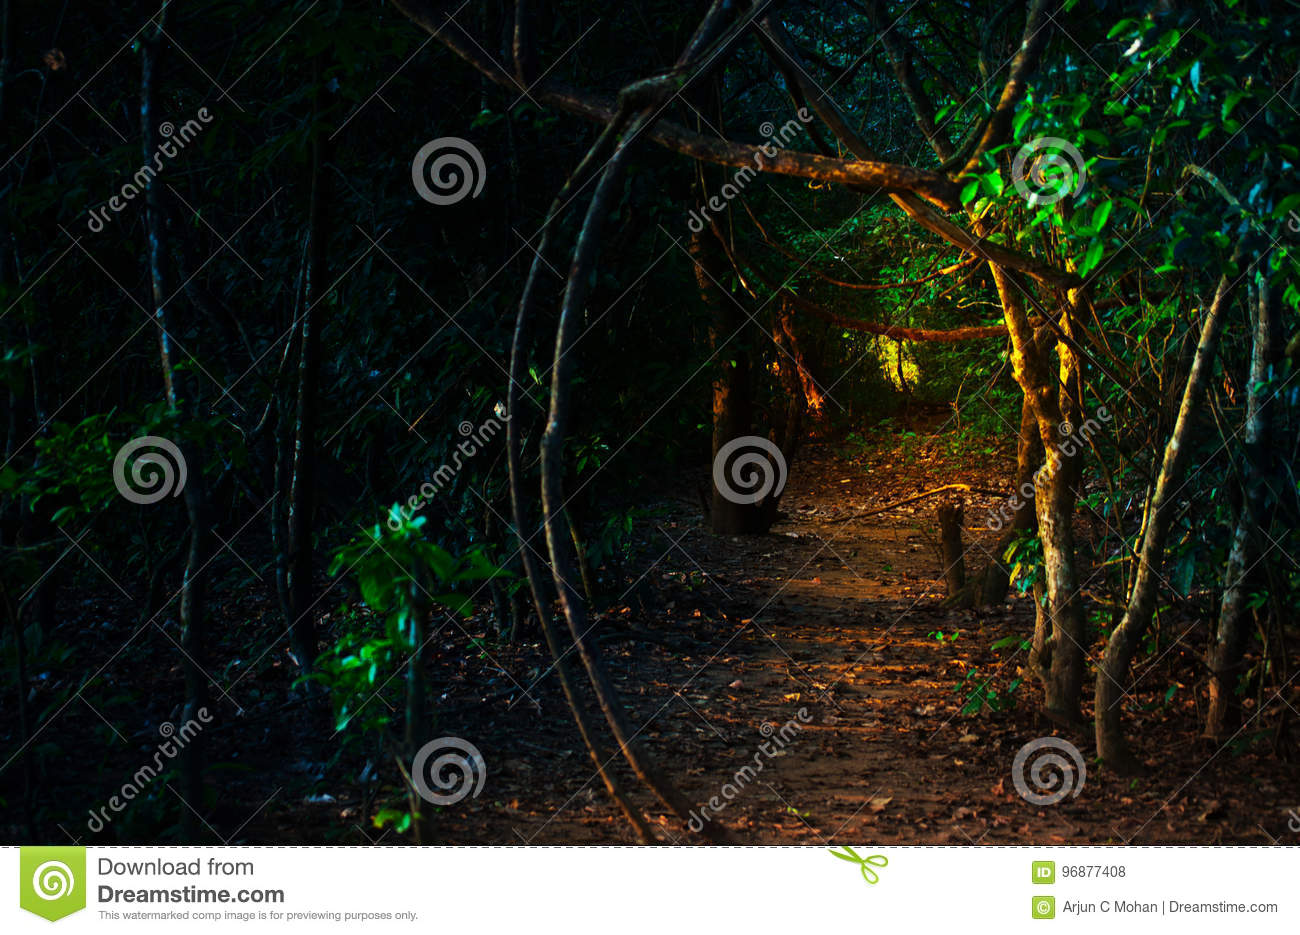 Surreal BoothathanKettu stock photo  Image of trail, fall